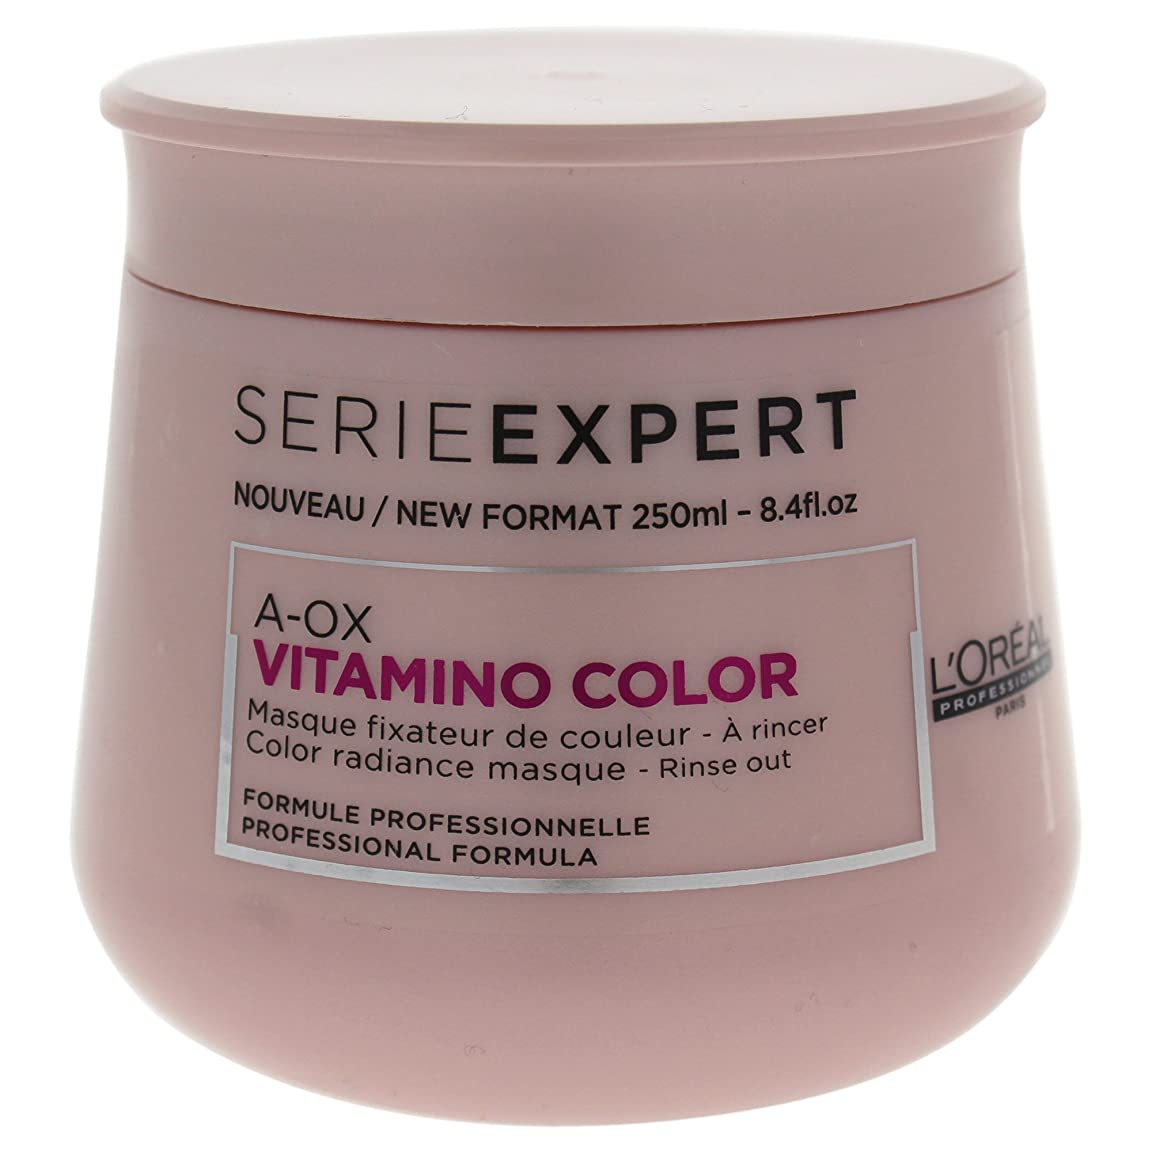 控えめなサイクル前奏曲L'Oreal Serie Expert A-OX VITAMINO COLOR Color Radiance Masque 250 ml [並行輸入品]